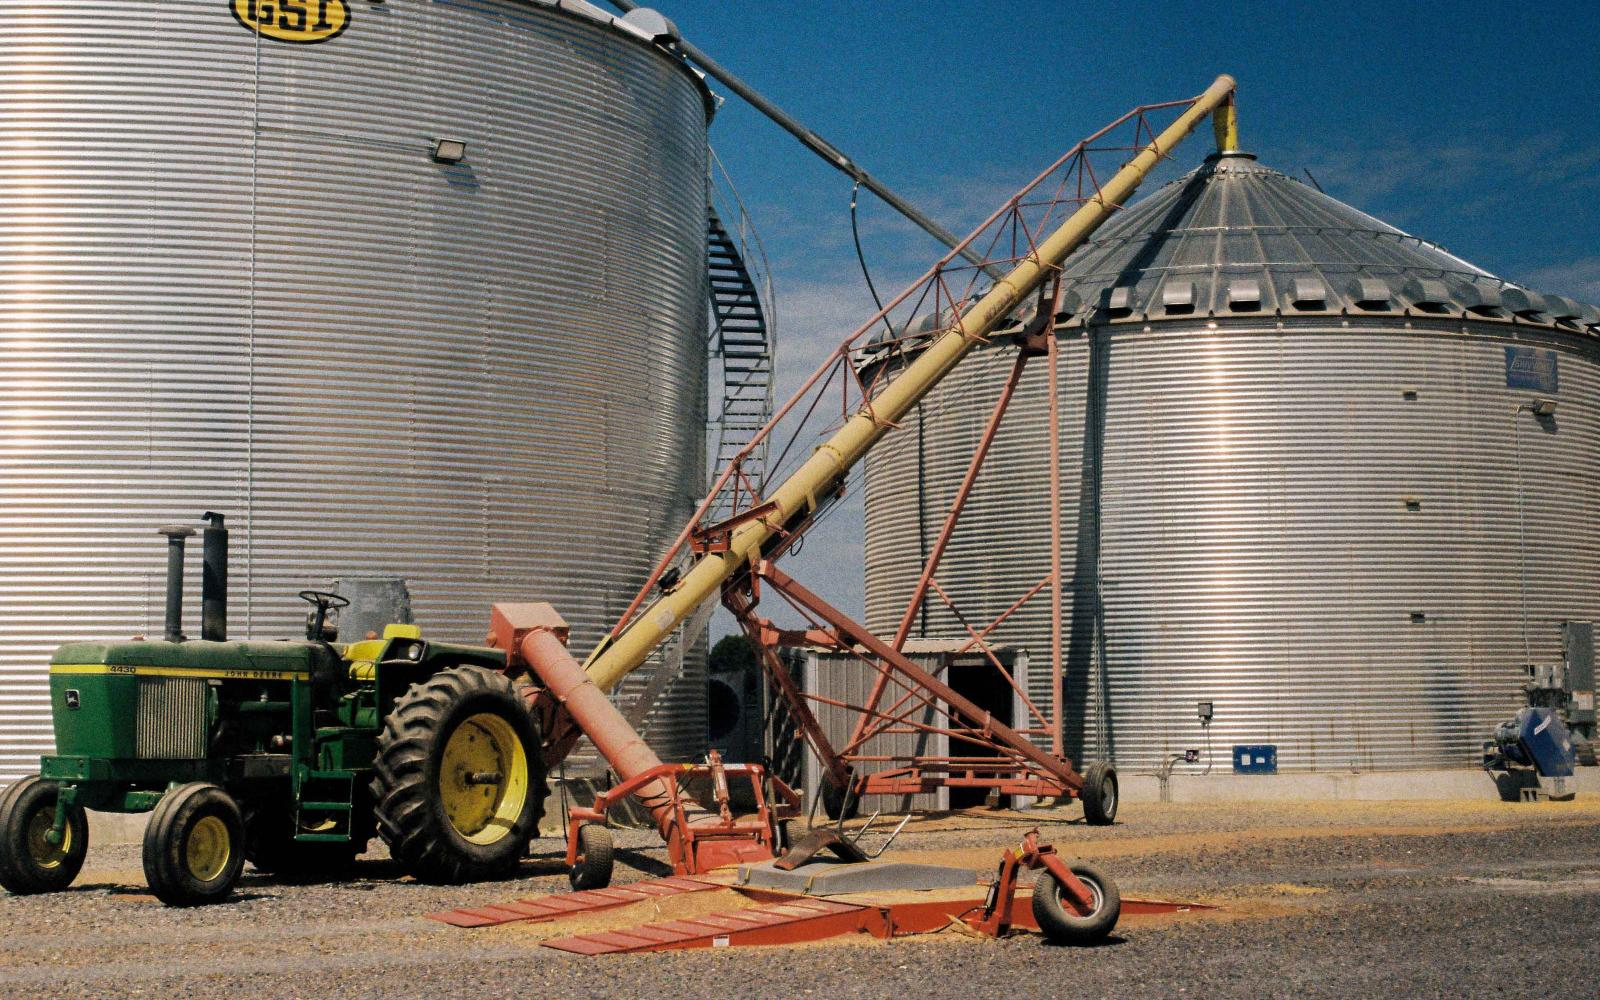 Most of the corn grown in the US goes for ethanol in oil production.